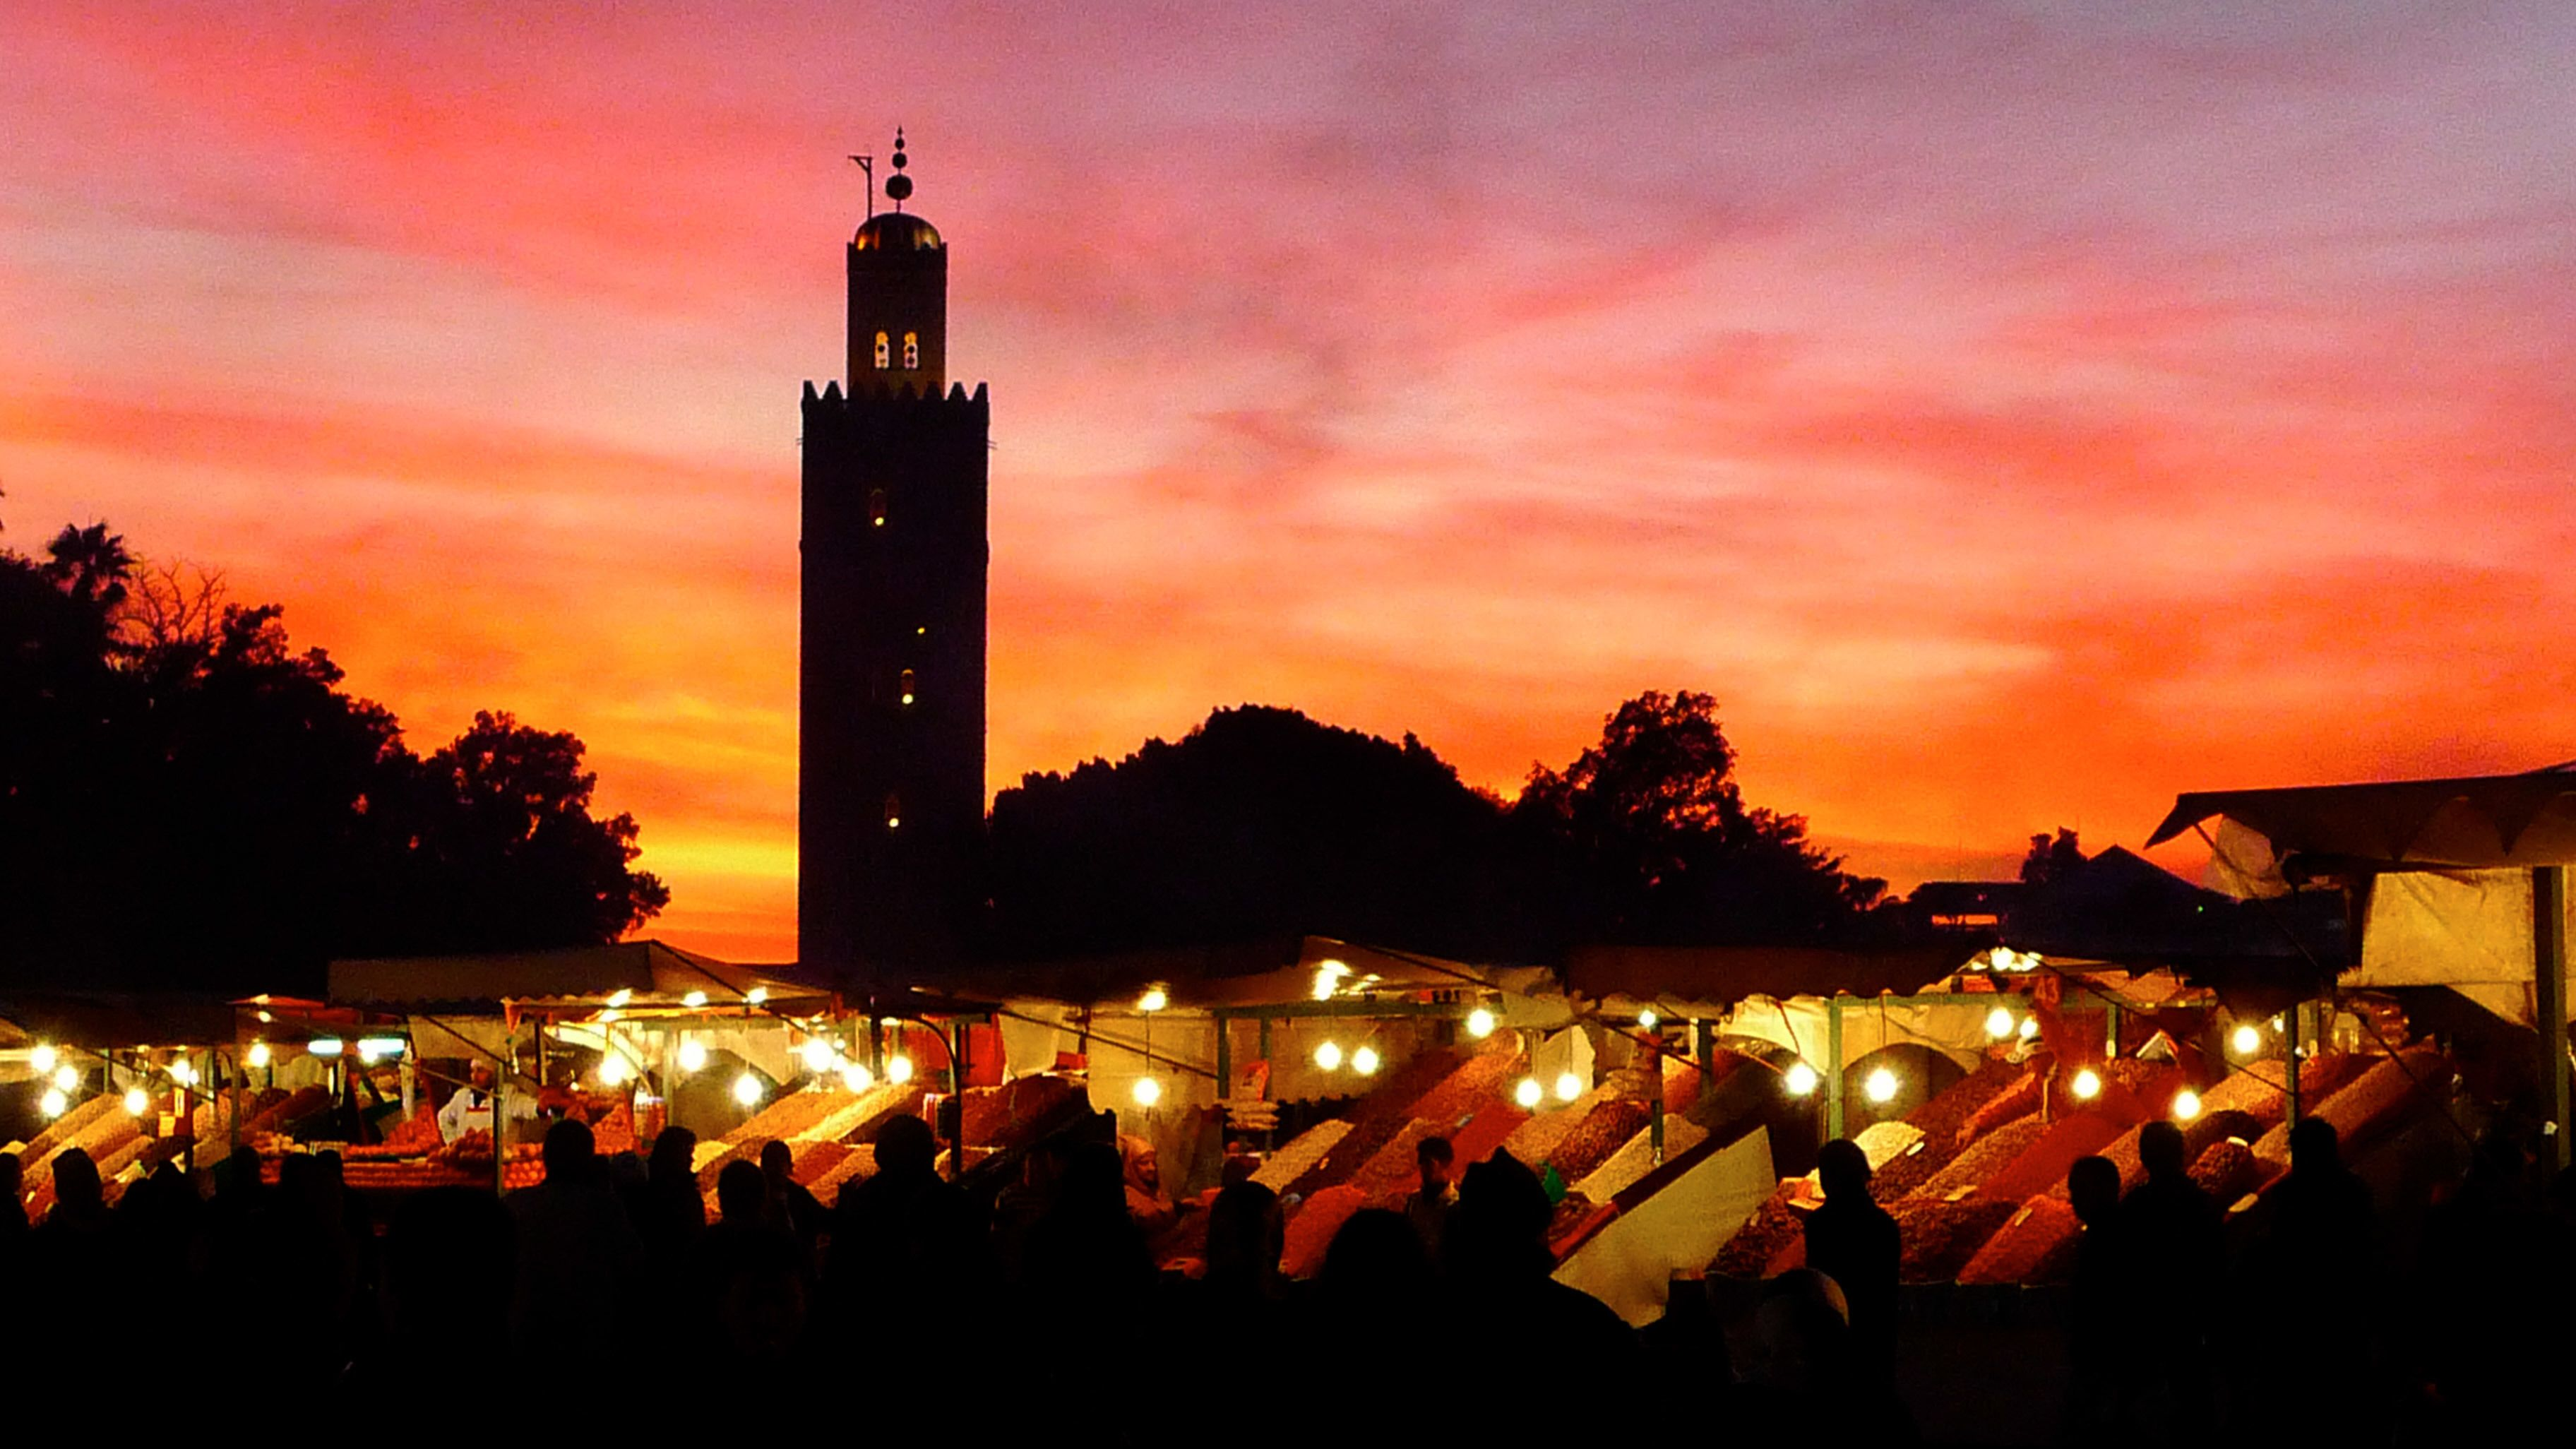 Market with silhouette of Koutoubia Mosque in the background at sunset in Marrakech